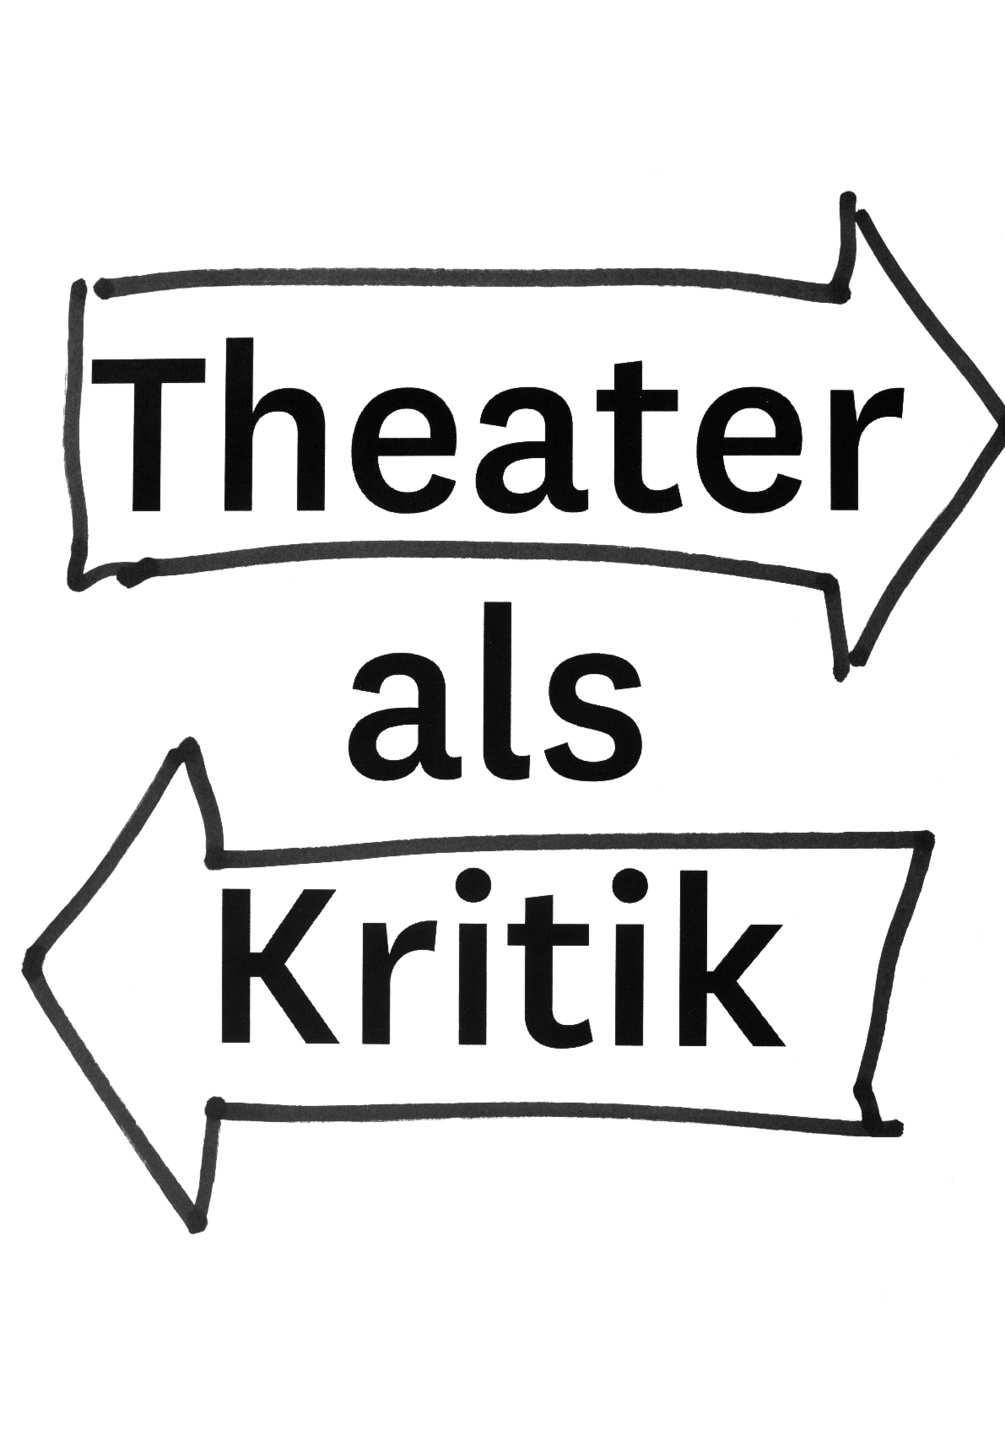 theater-as-critique-slip-33-1005x1435px